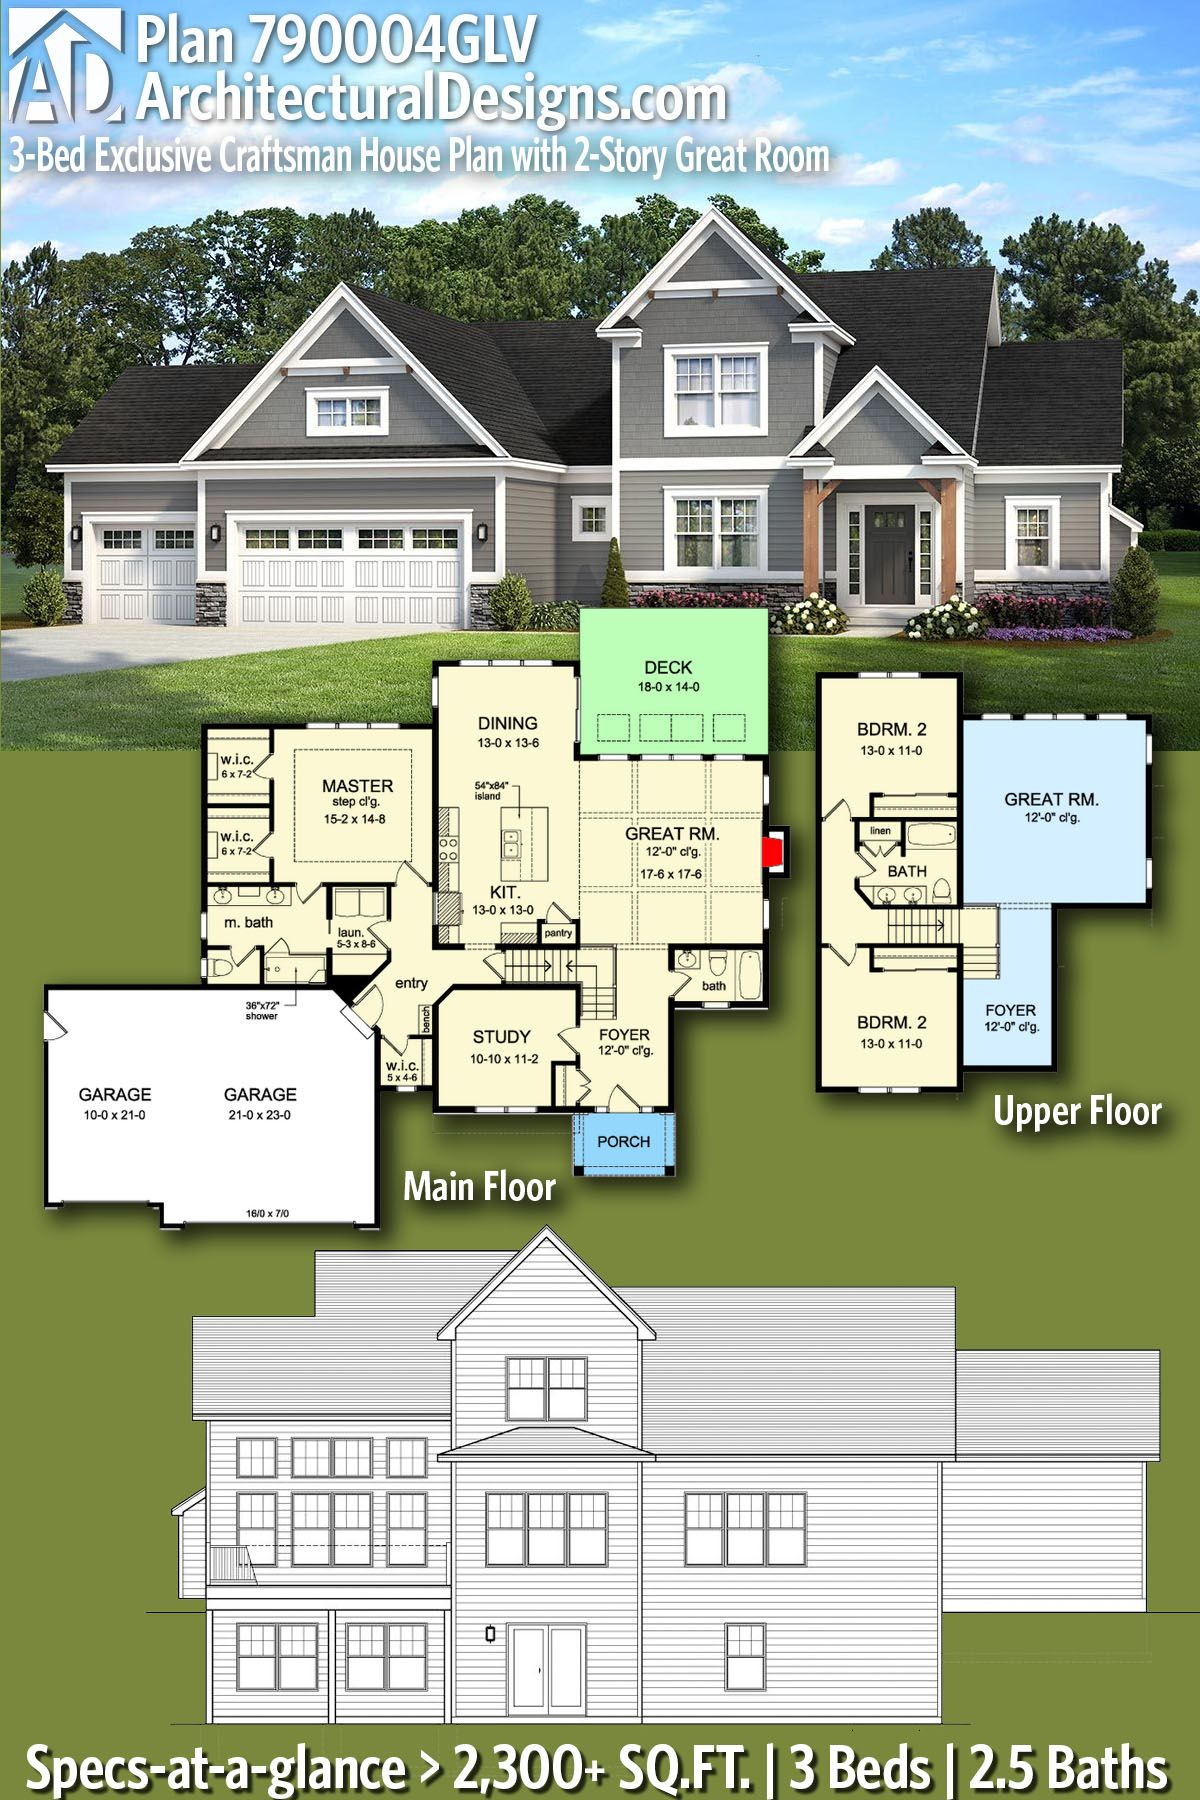 Plan 790004glv Exclusive Craftsman House Plan With 2 Story Great Room House Plans House Layouts House